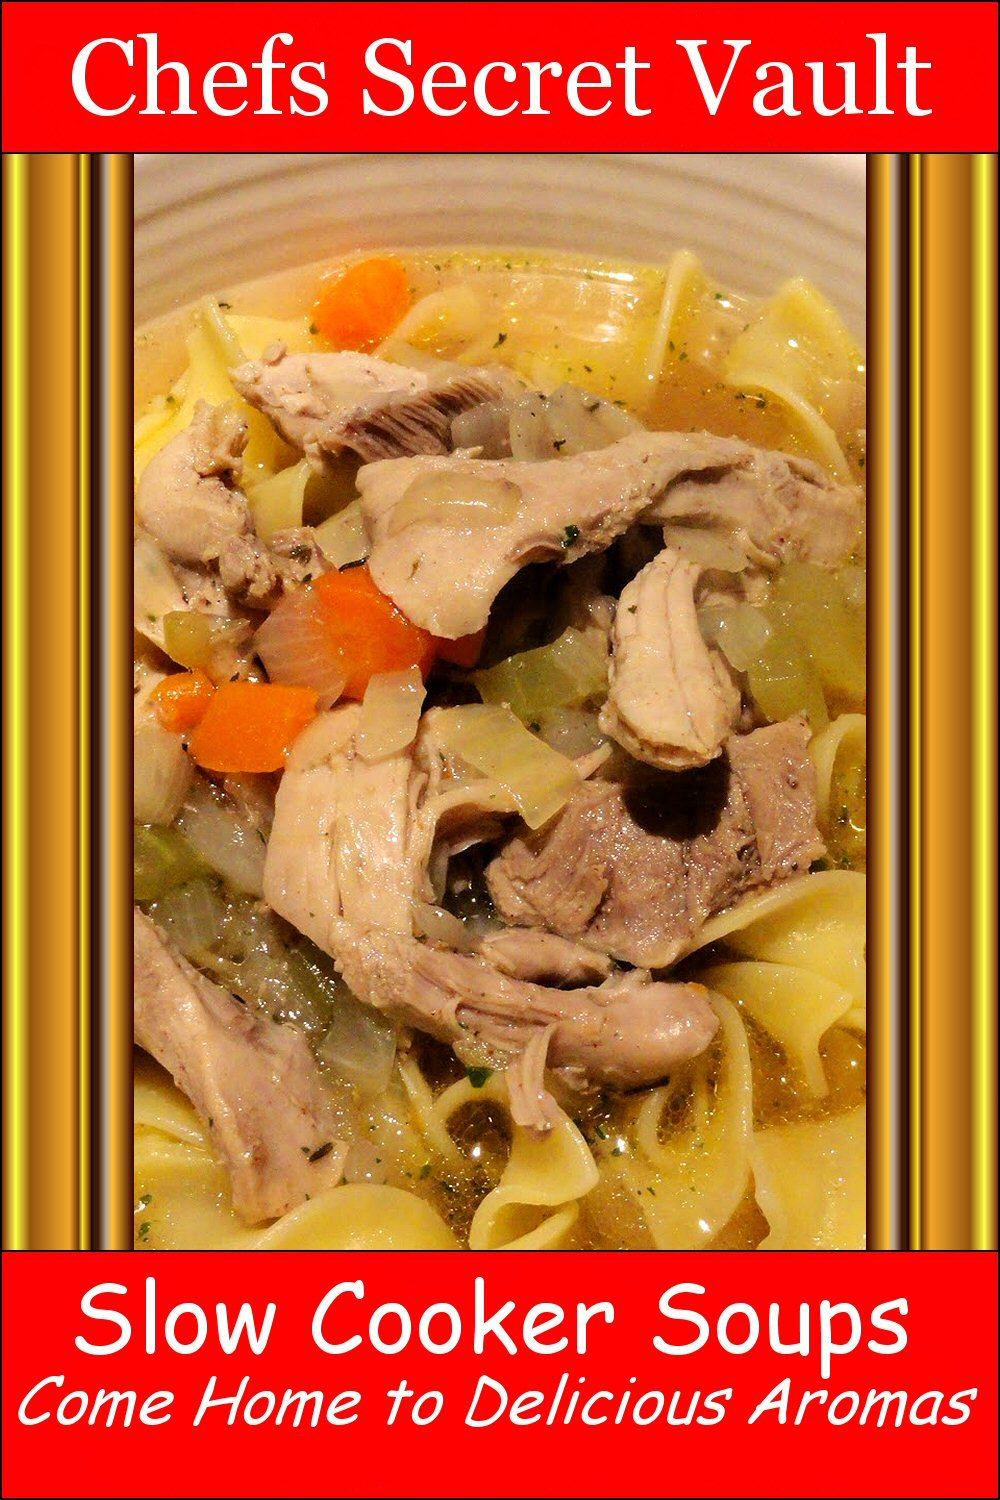 Slow Cooker Soups: Come Home to Delicious Aromas